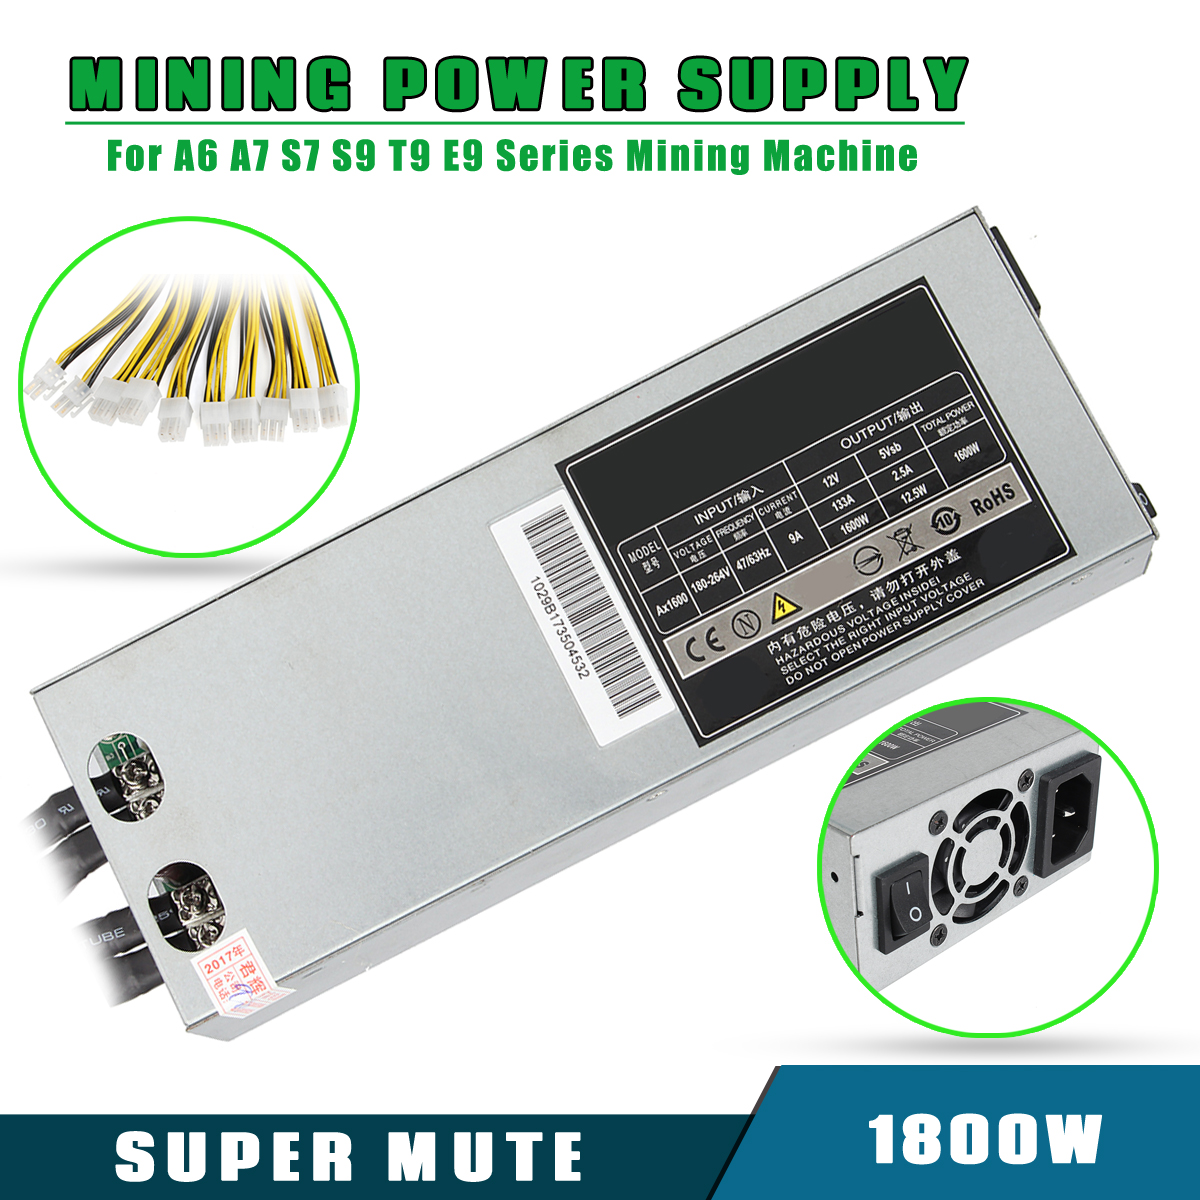 S SKYEE 1800W Power Supply For A6 A7 S7 S9 T9 E9 Series Mining Machine Computer Mining Power Supply With Cable For Miner Mining стайлер remington ci91x1